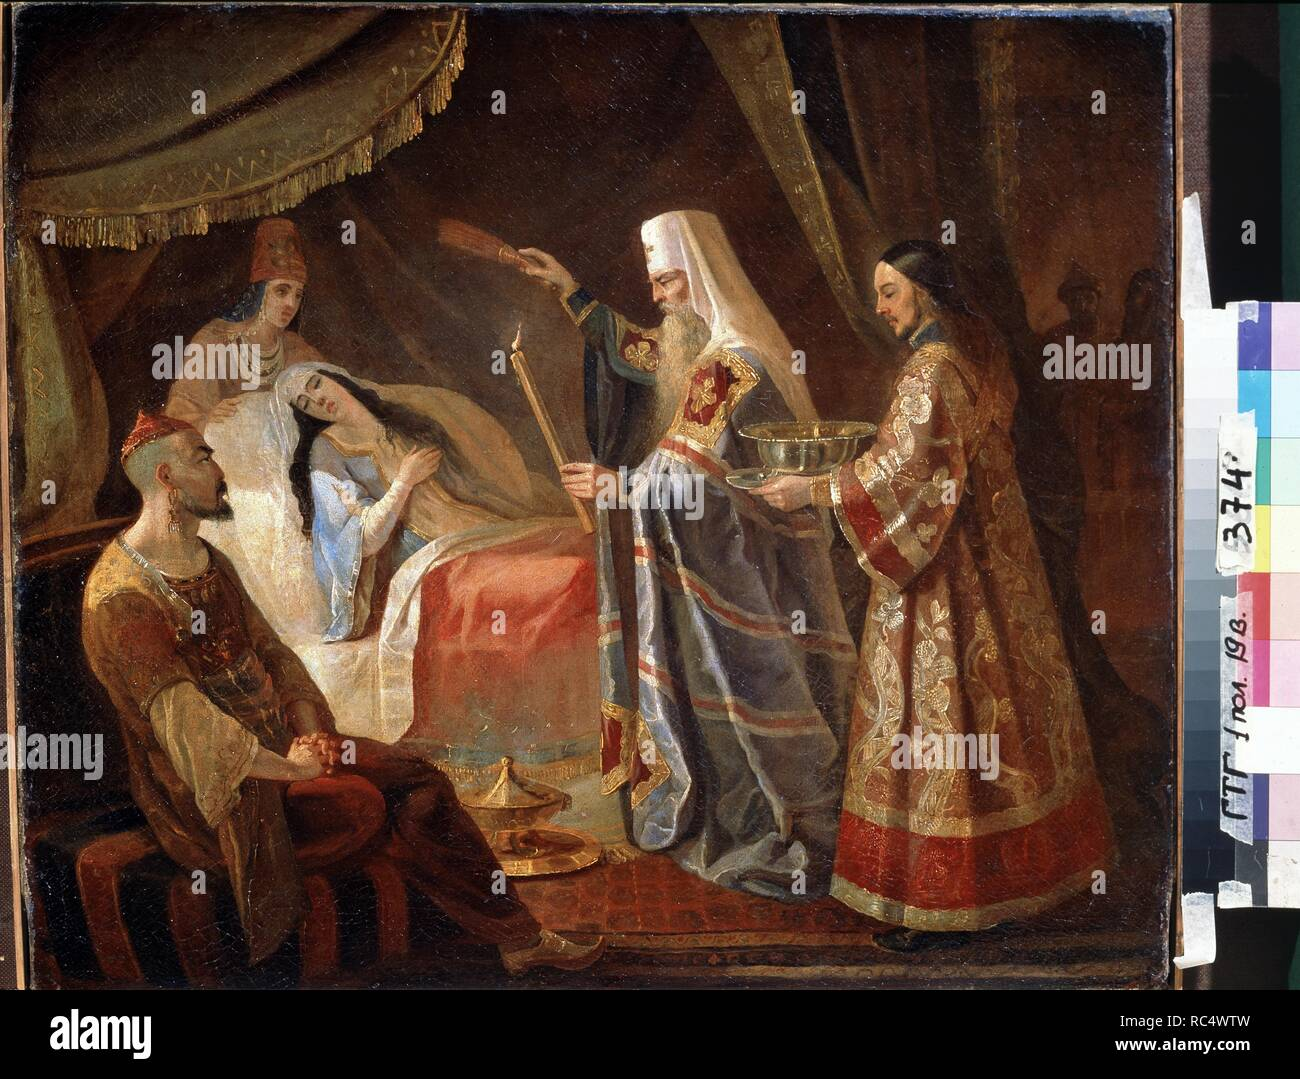 Metropolitan Alexis Healing the Tatar Queen Taidula from Blindness. Museum: State Tretyakov Gallery, Moscow. Author: Kapkov, Yakov Fyodorovich. Stock Photo